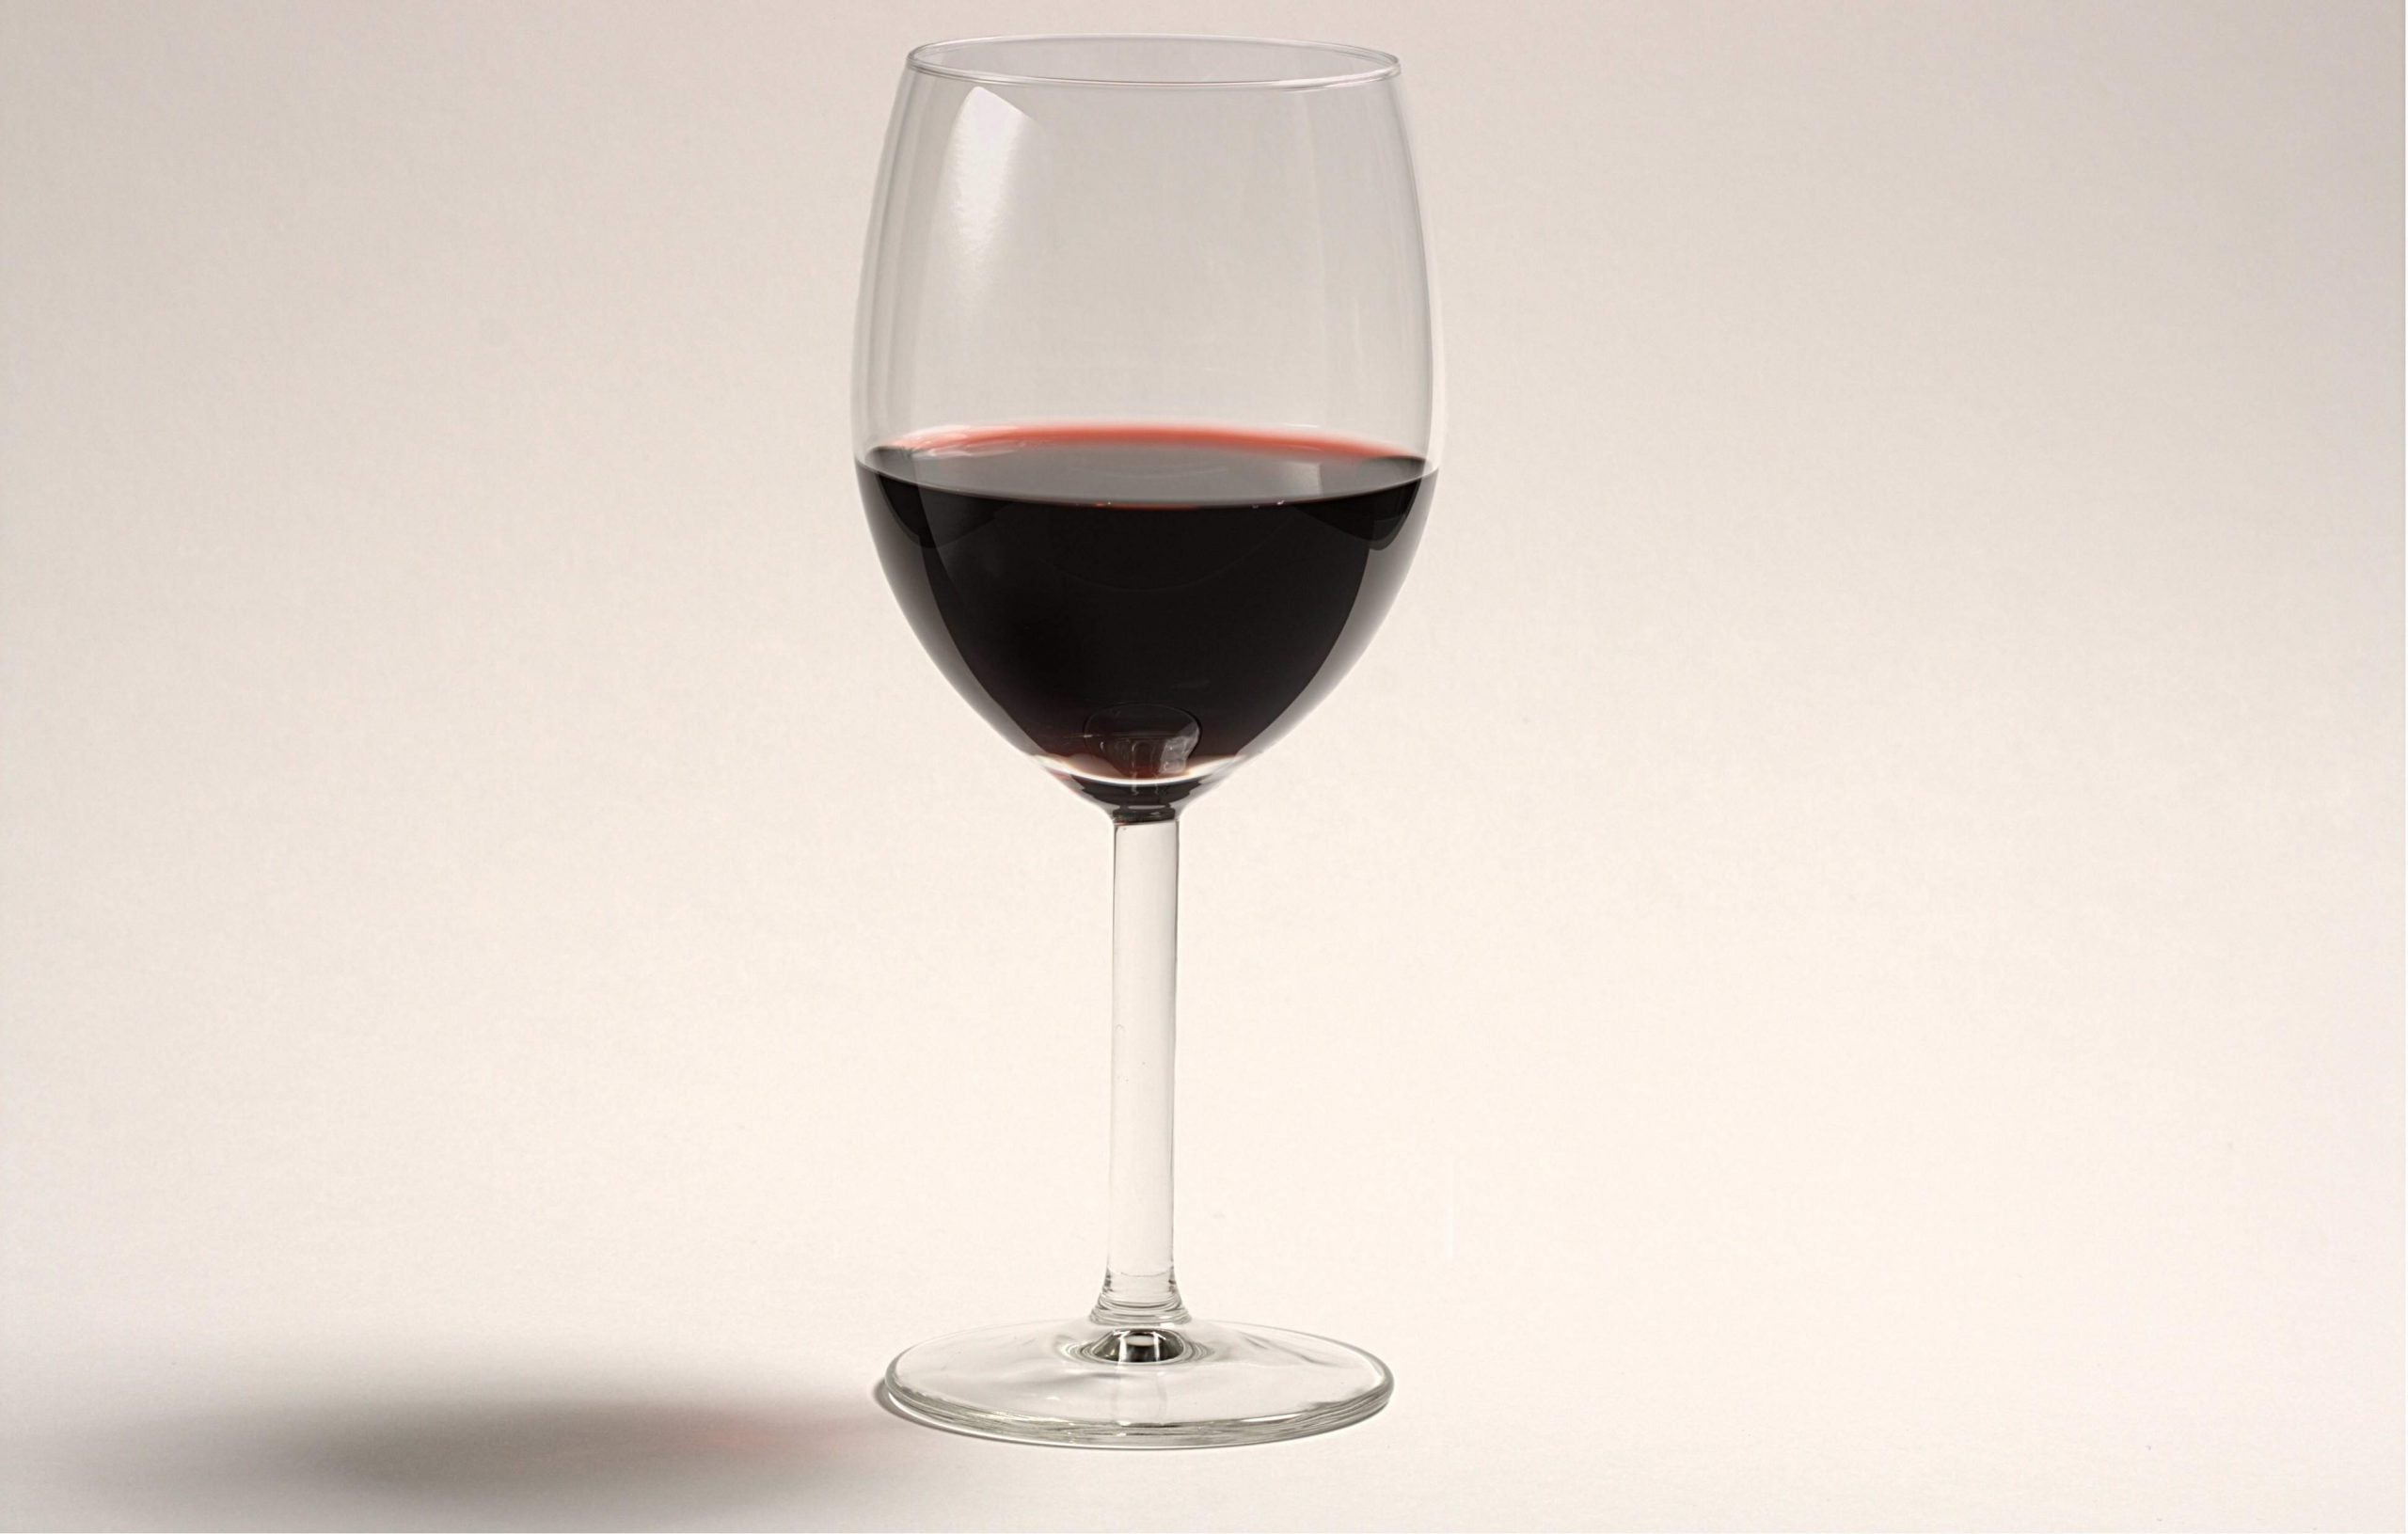 Scientists have finally said it: alcohol causes cancer